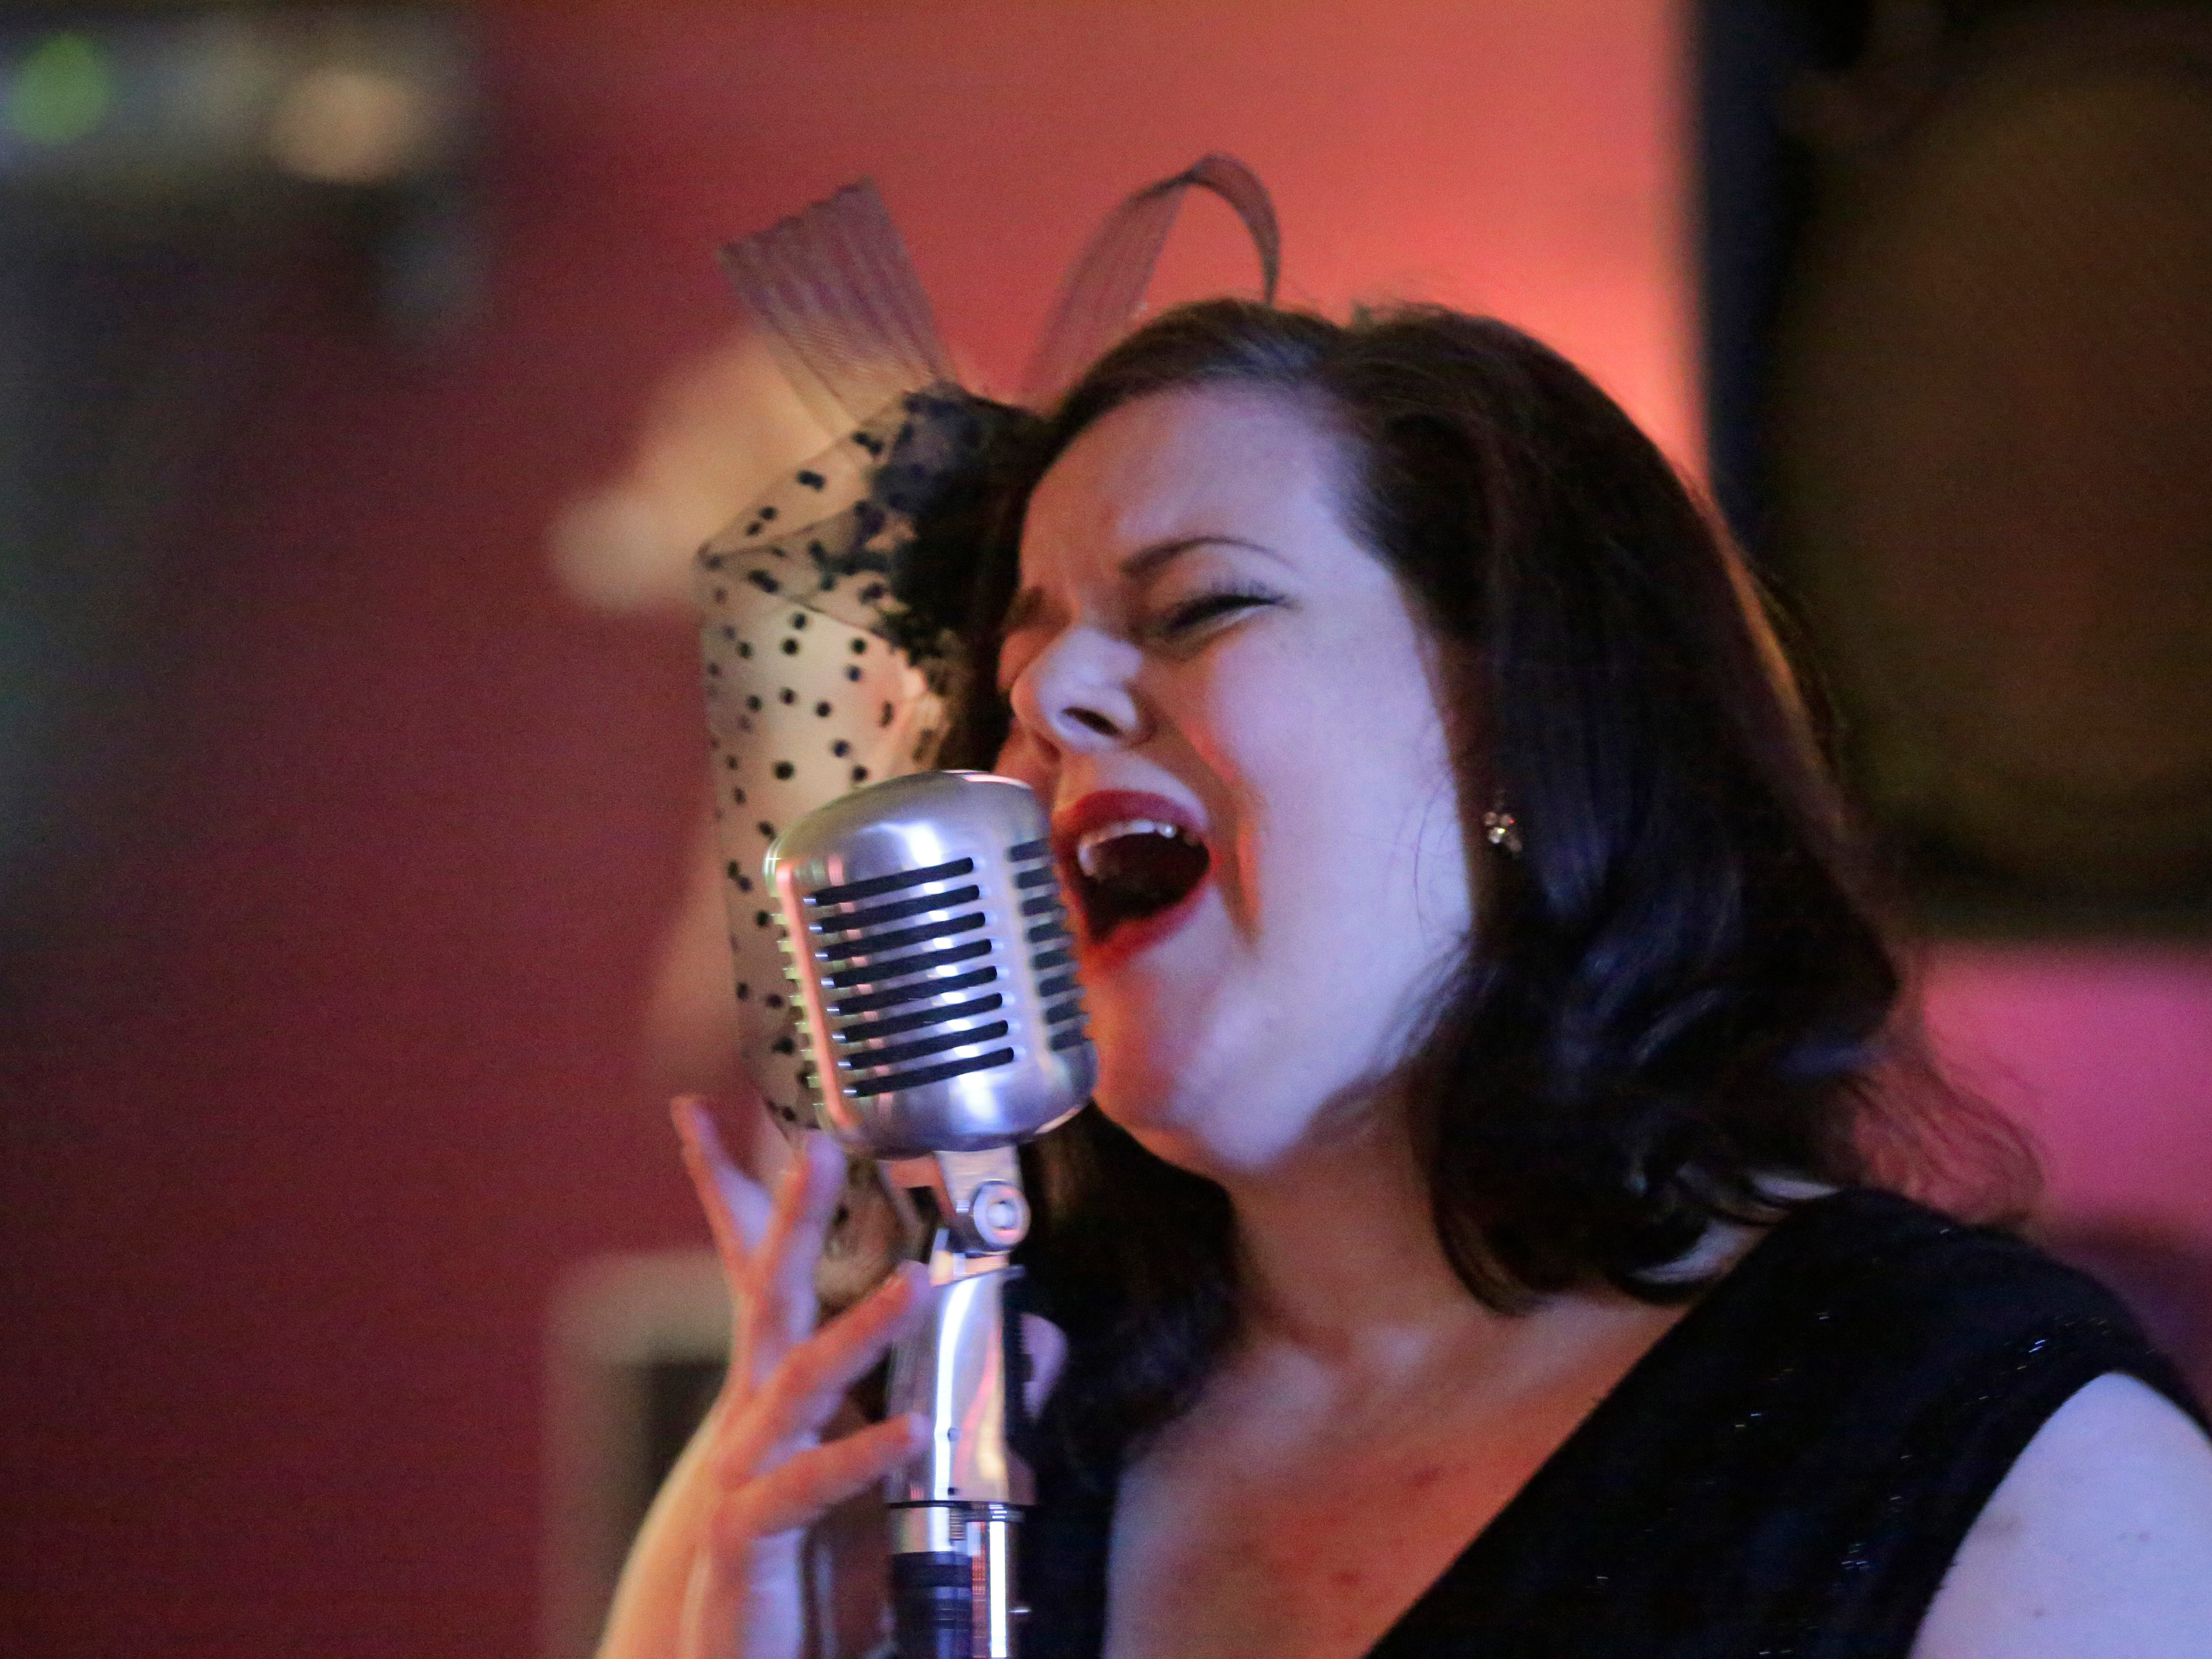 Chanel Le Meaux snarls out the jazz at Wild Shots Pub during the Jazz Crawl, Friday, August 10, 2018, in Plymouth, Wis.